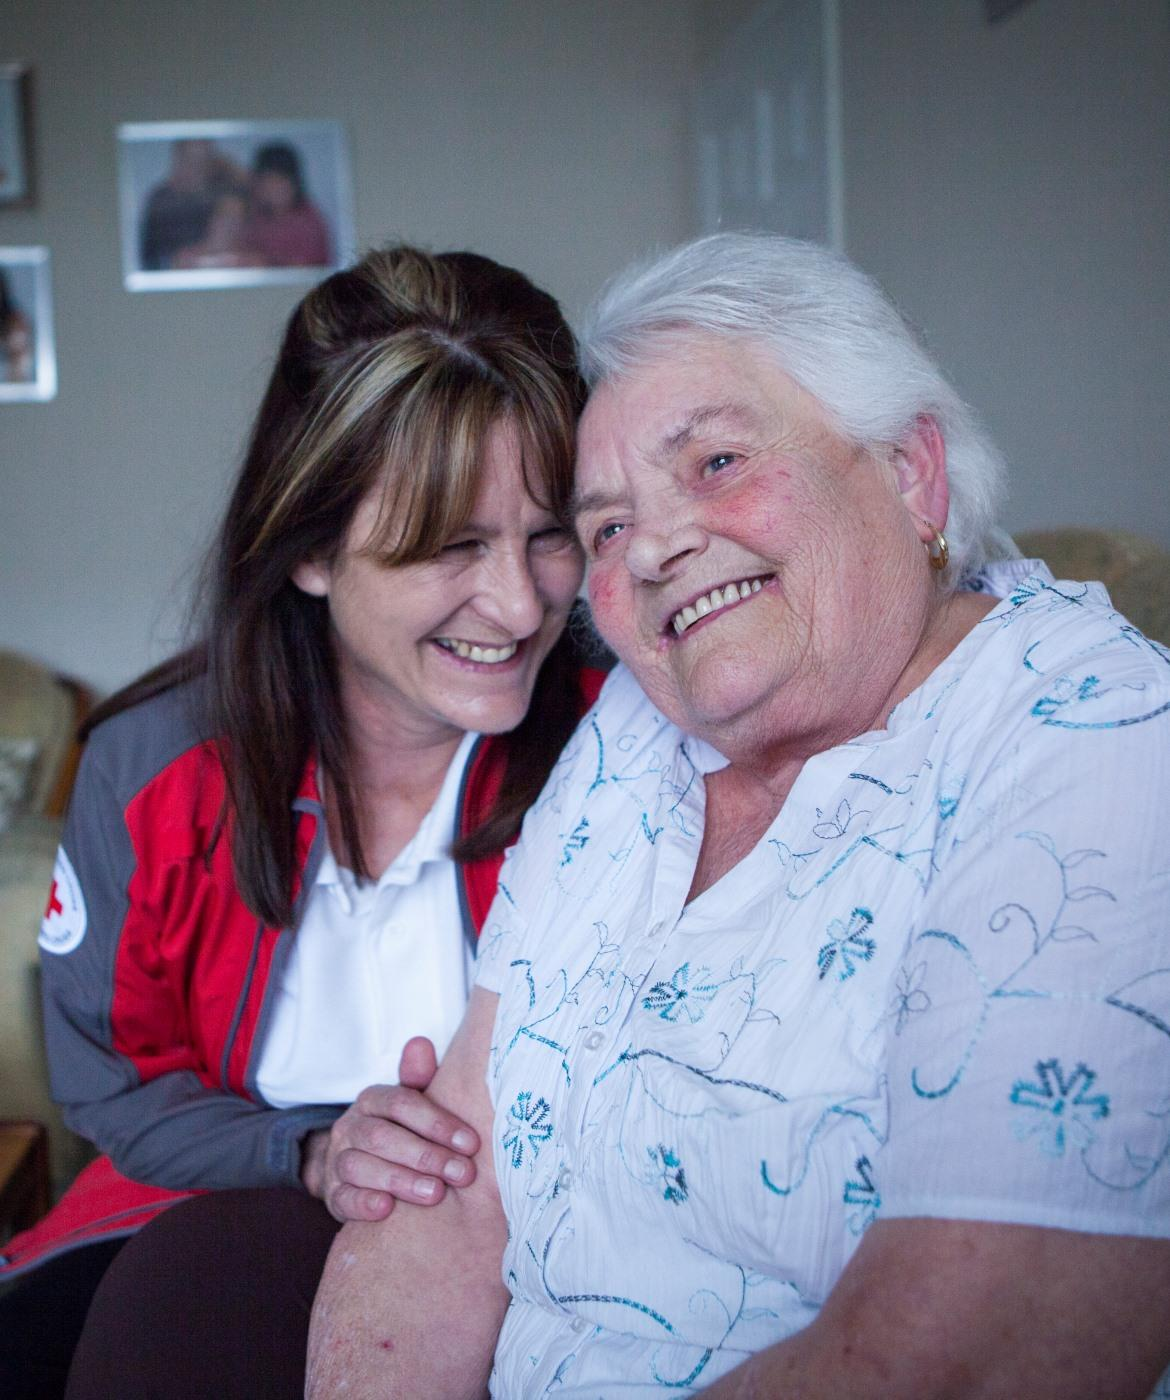 A Red Cross Volunteer sits with a woman